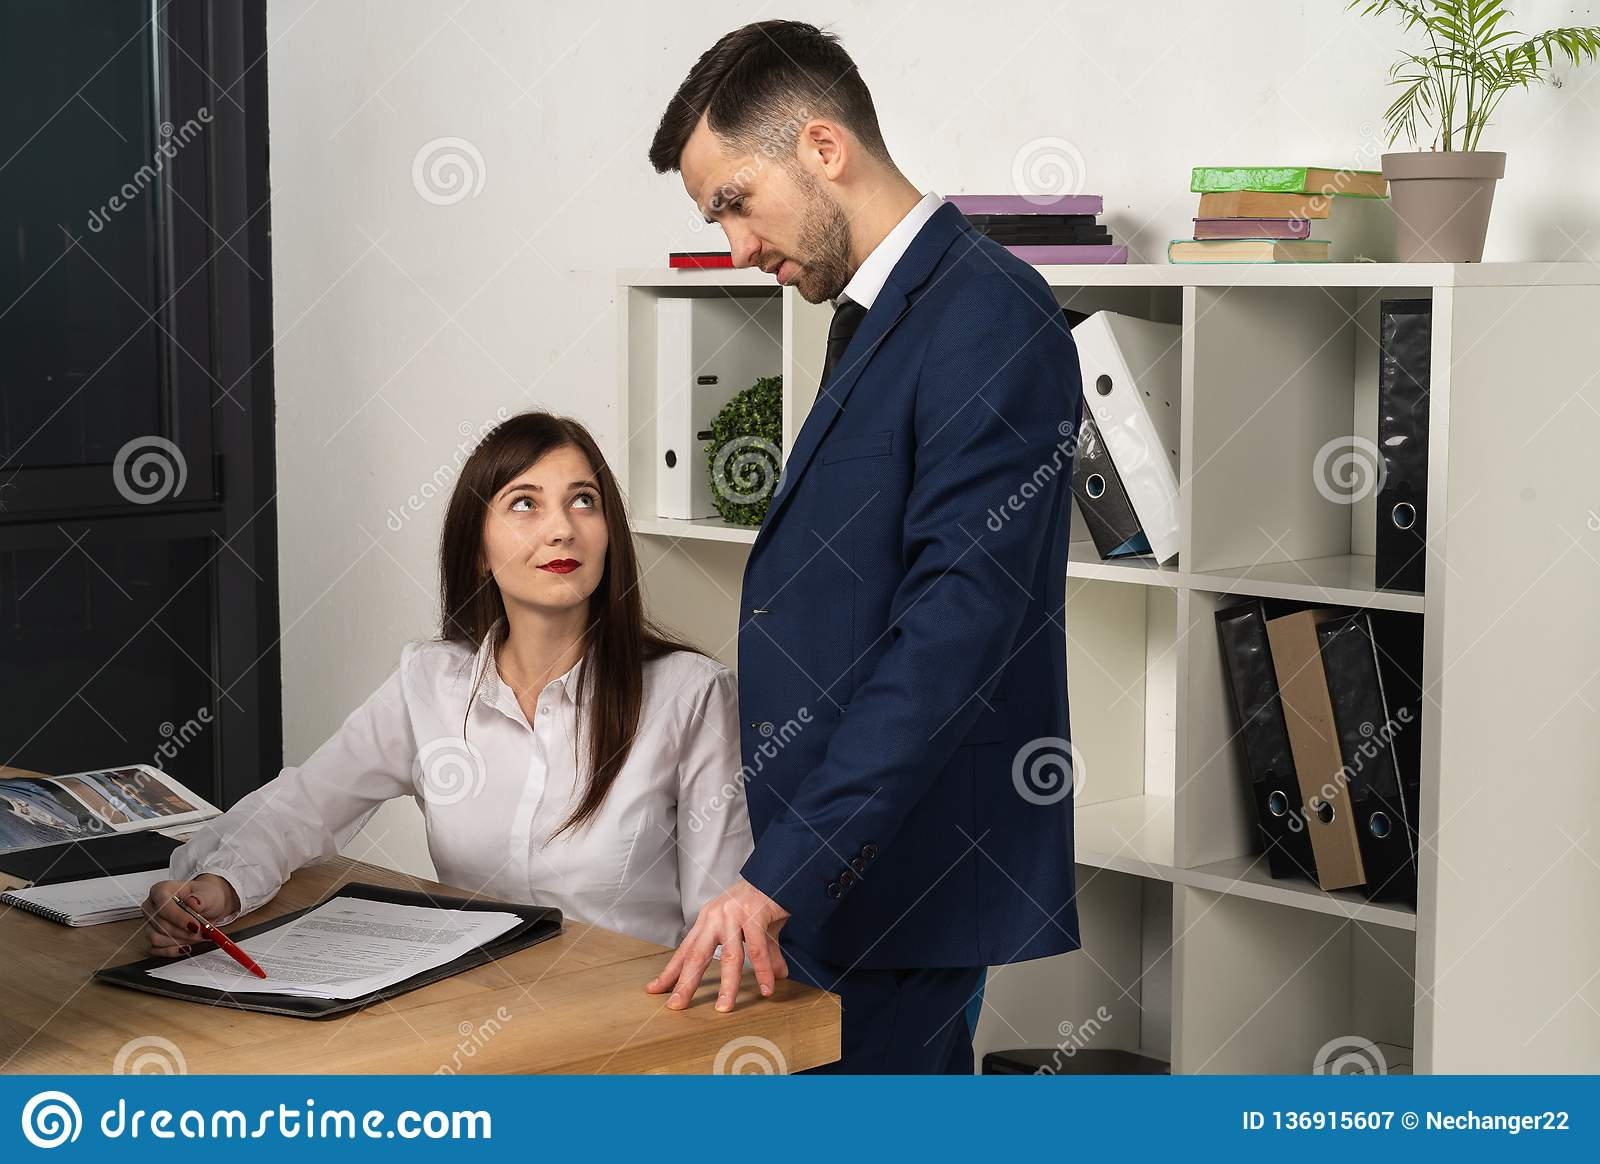 Friendly mentor explaining task for young employee